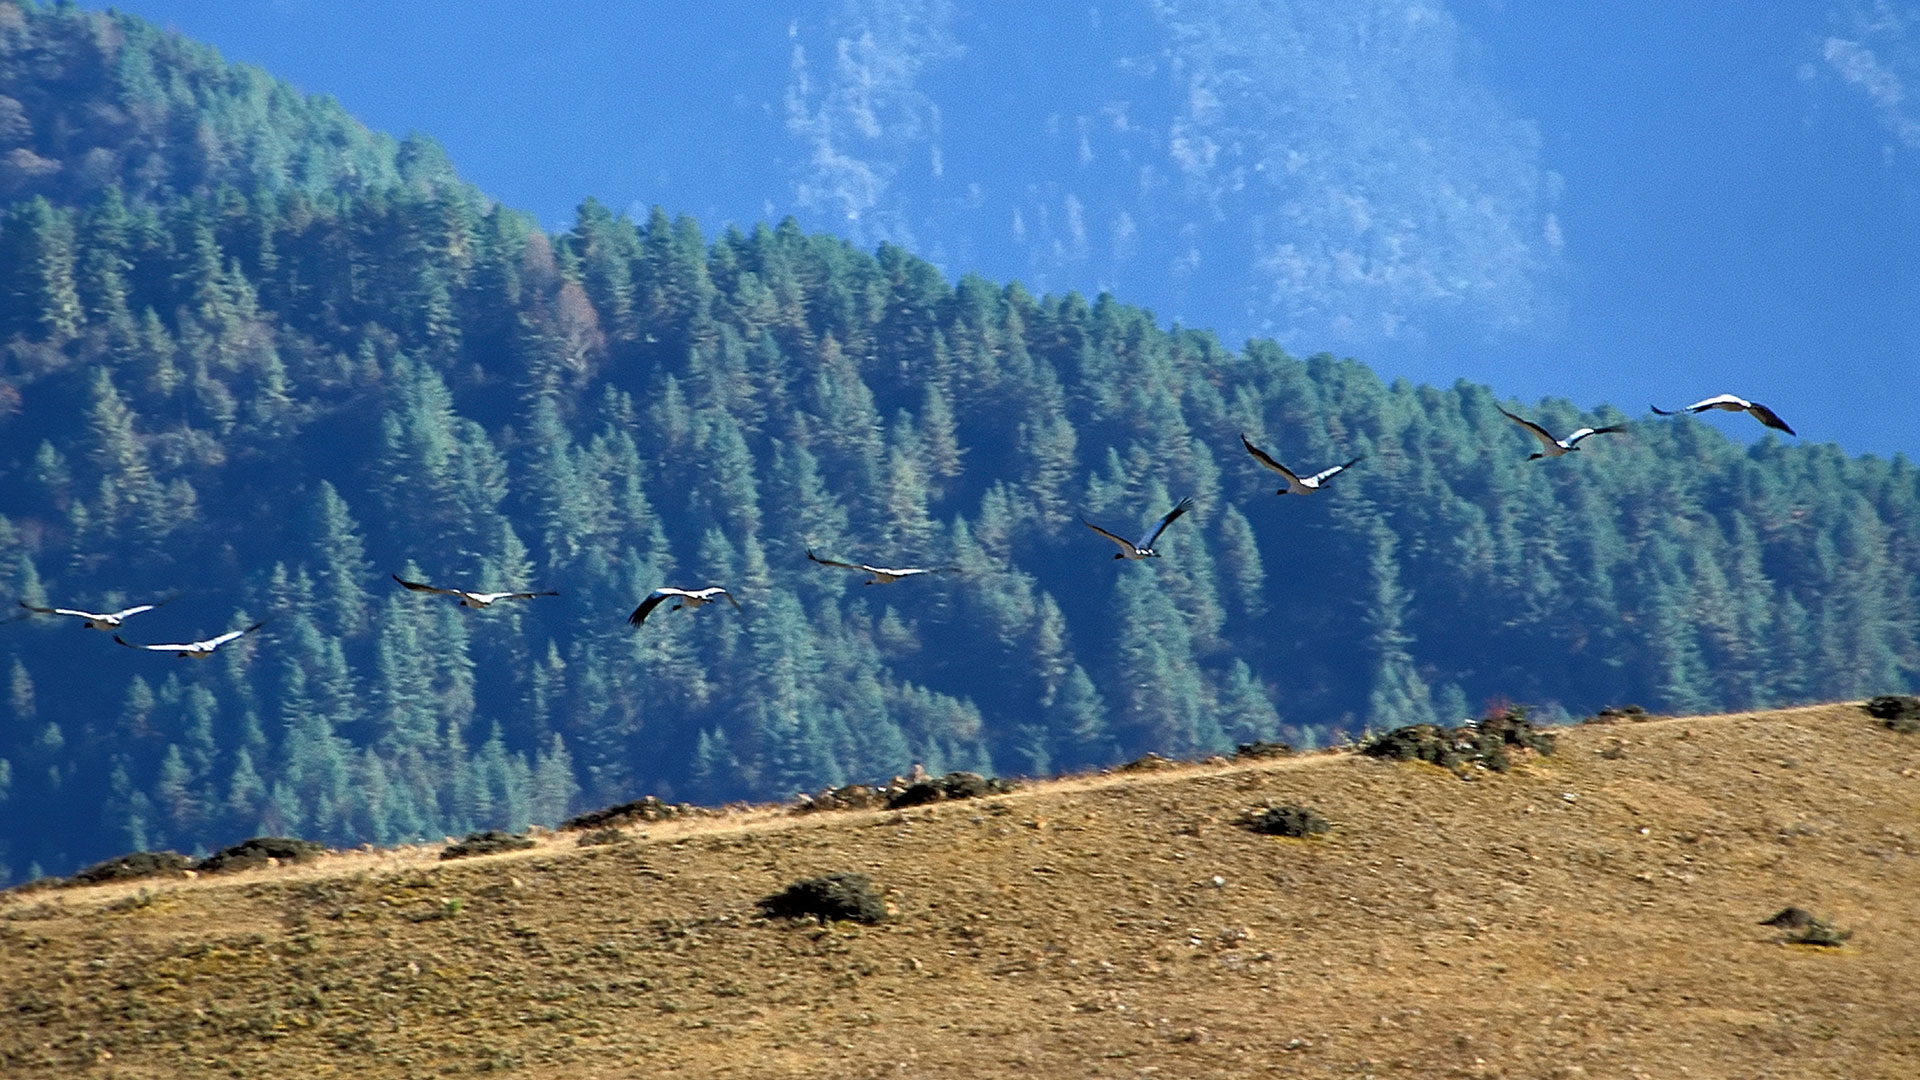 Black-necked cranes flying in the Phobjikha Valley, Bhutan